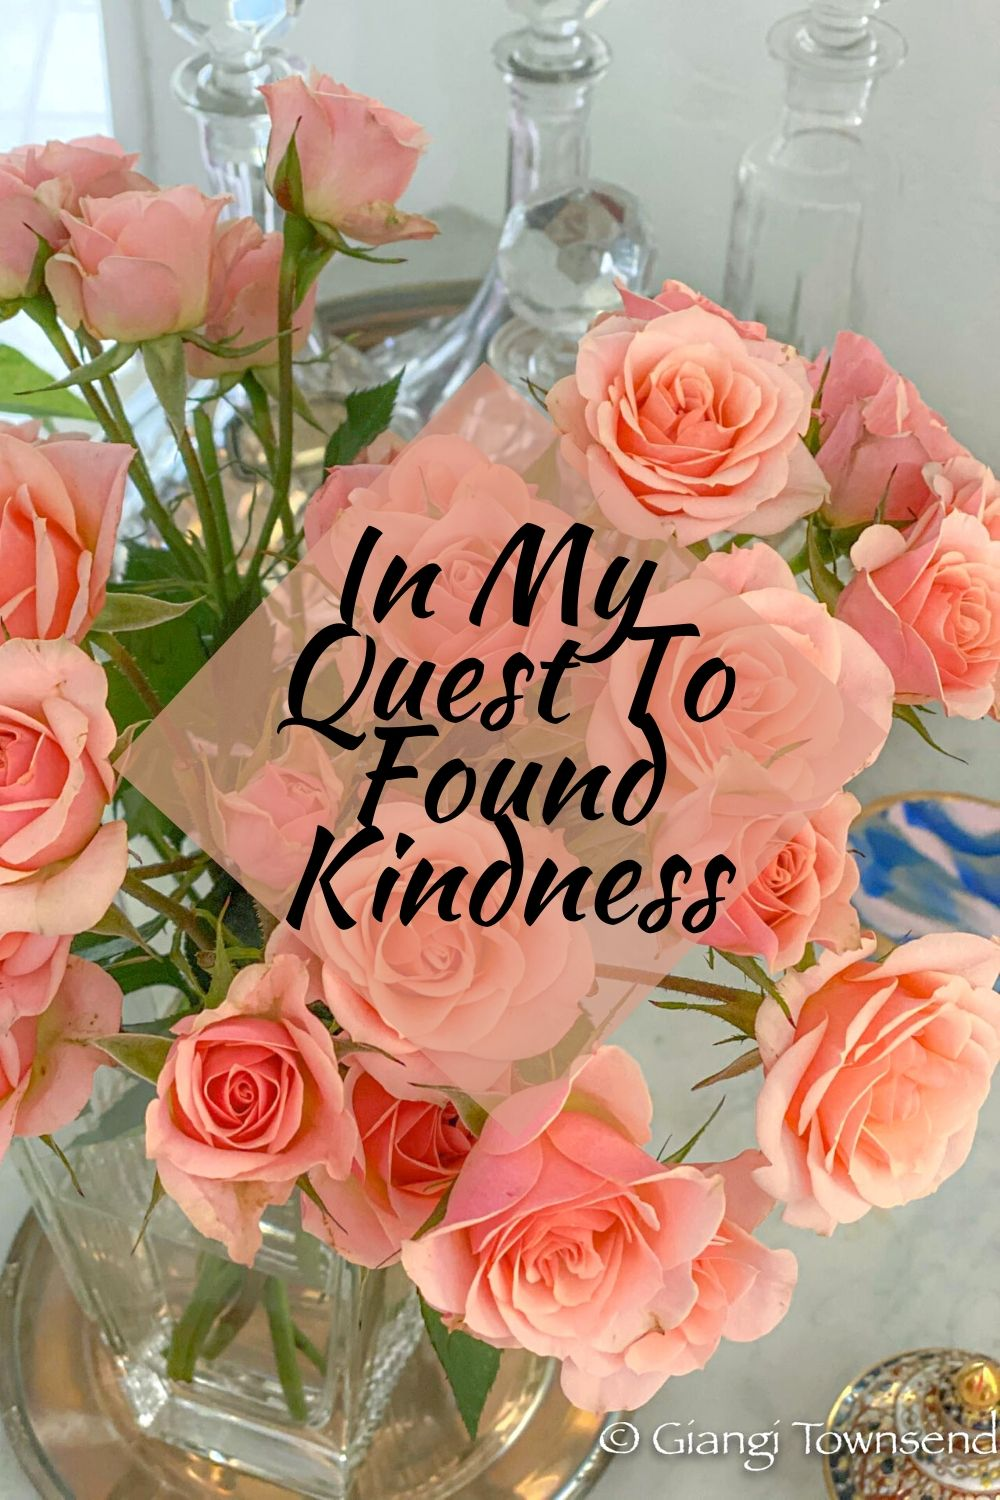 In my quest to found kindness